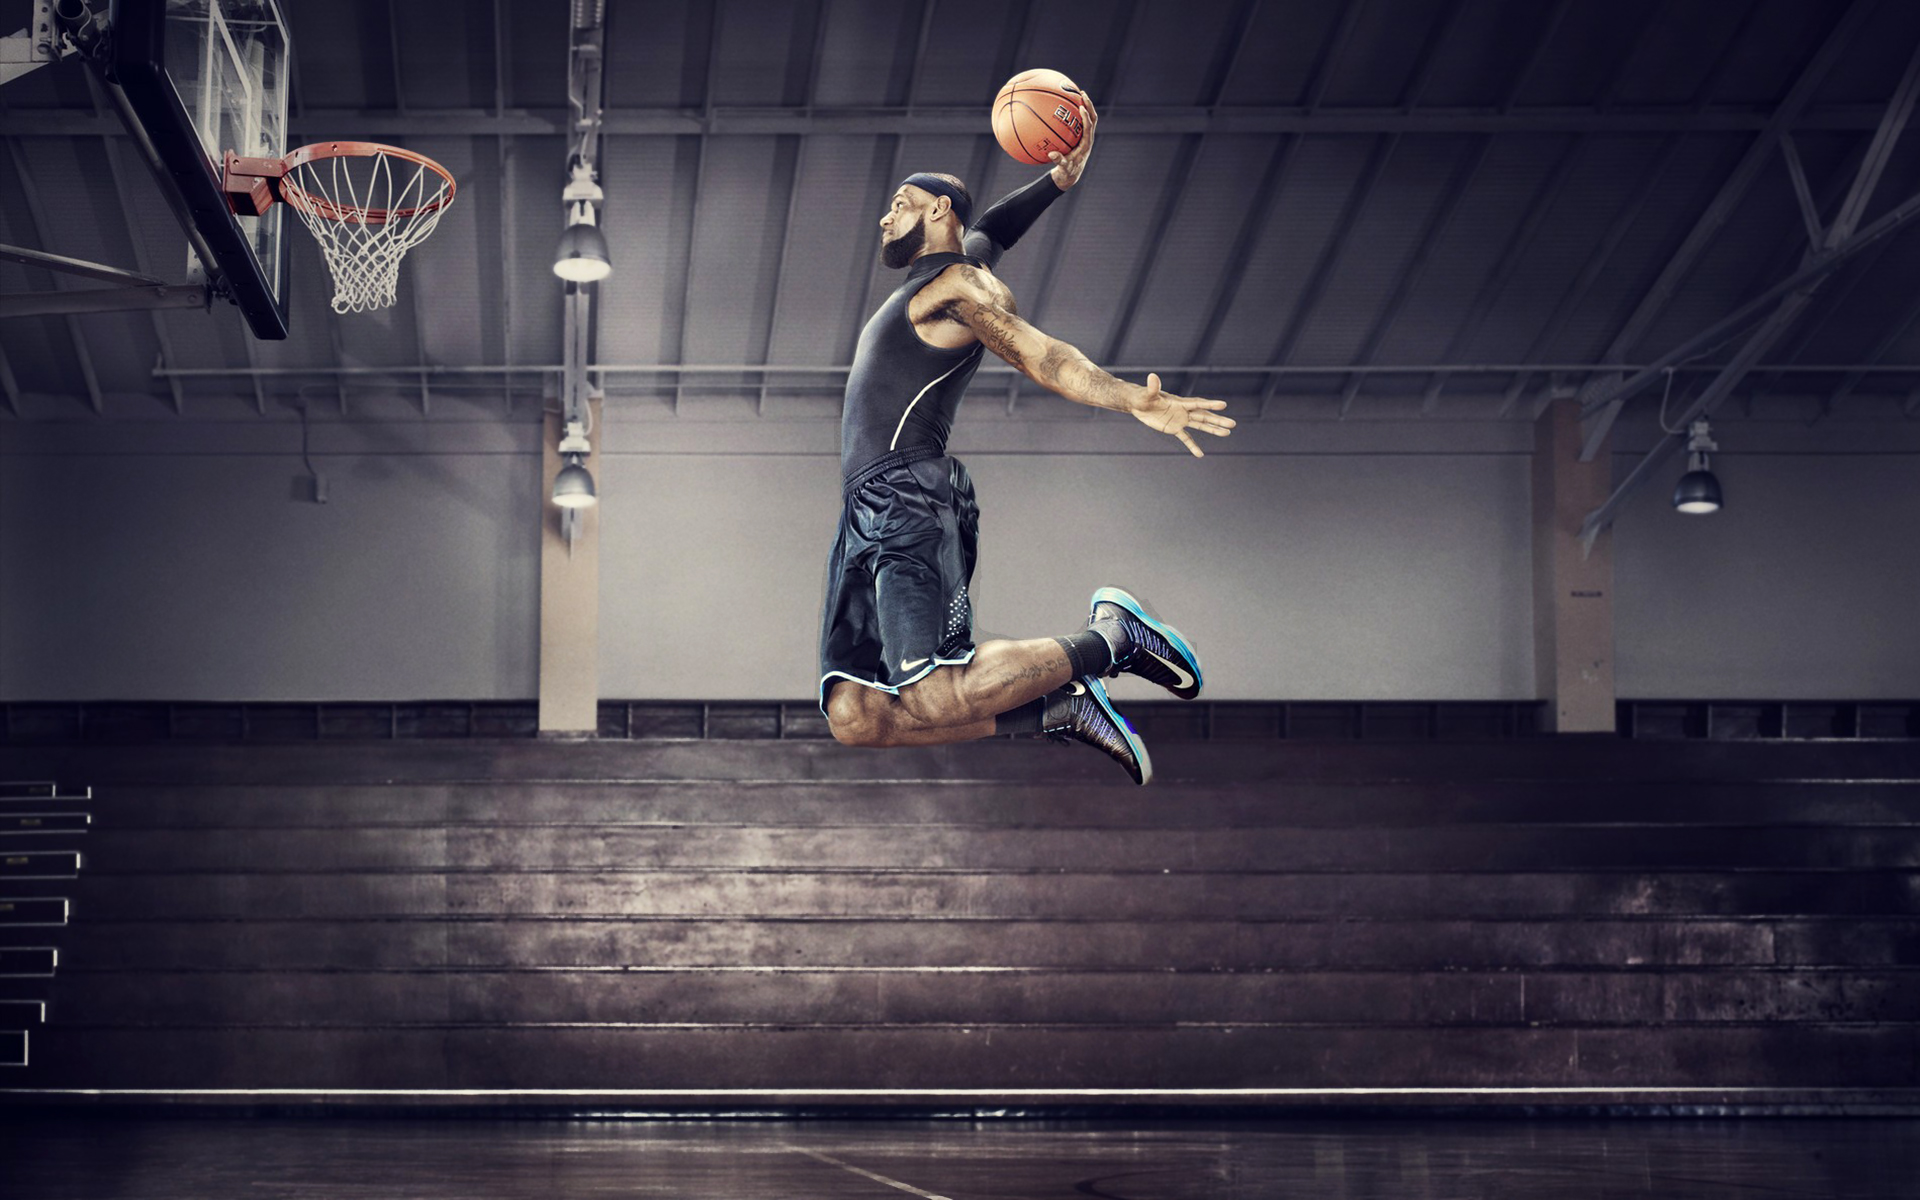 Lebron James and Nike